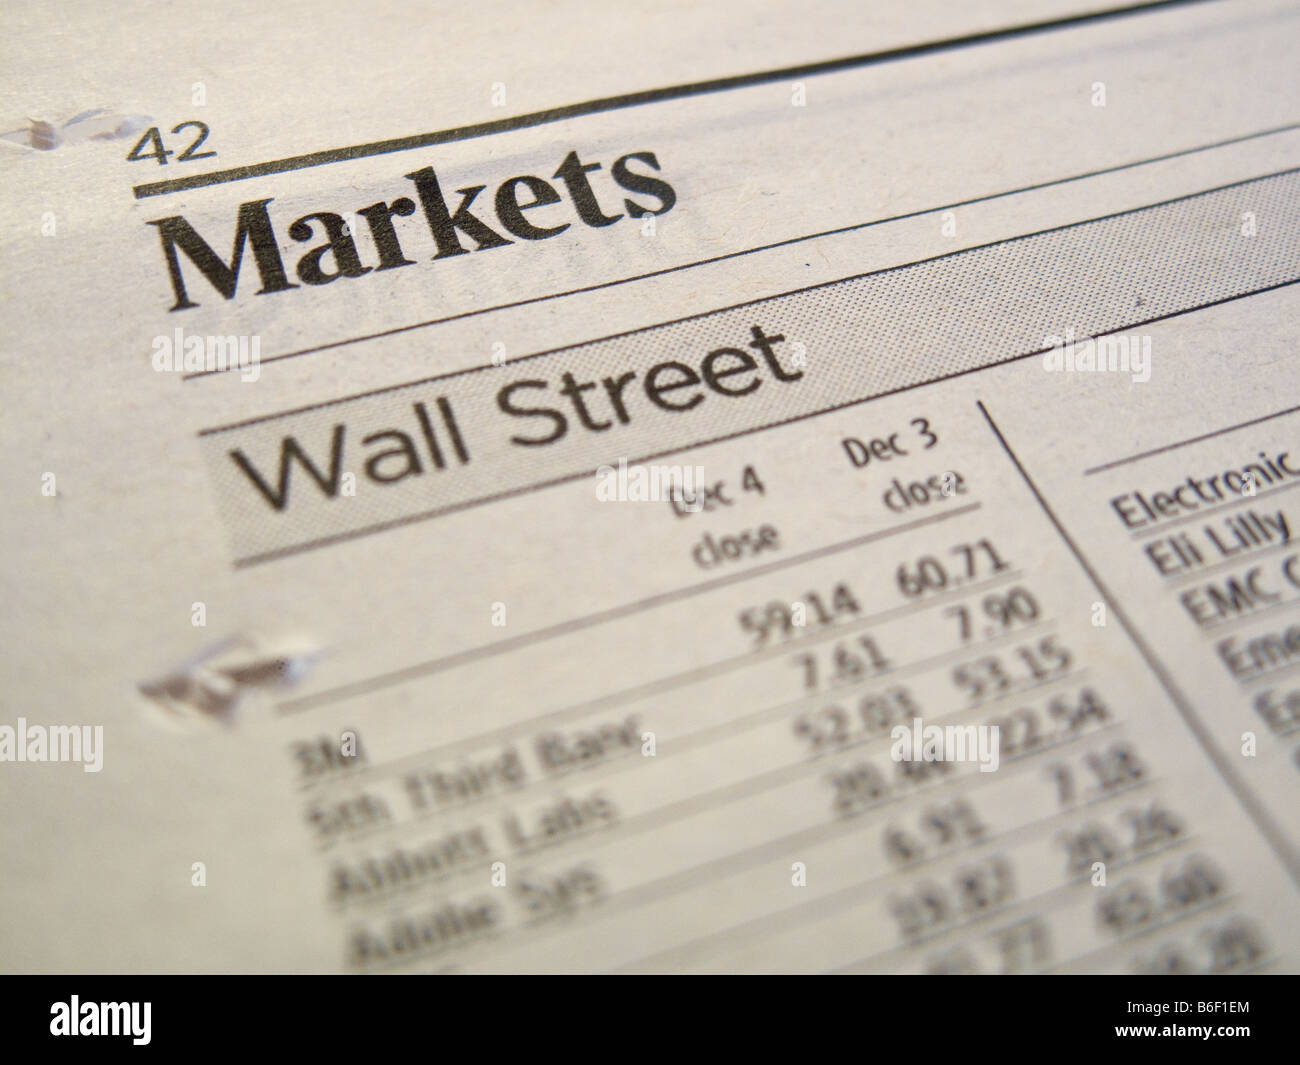 Stocks and shares market page in a newspaper financial section - Stock Image